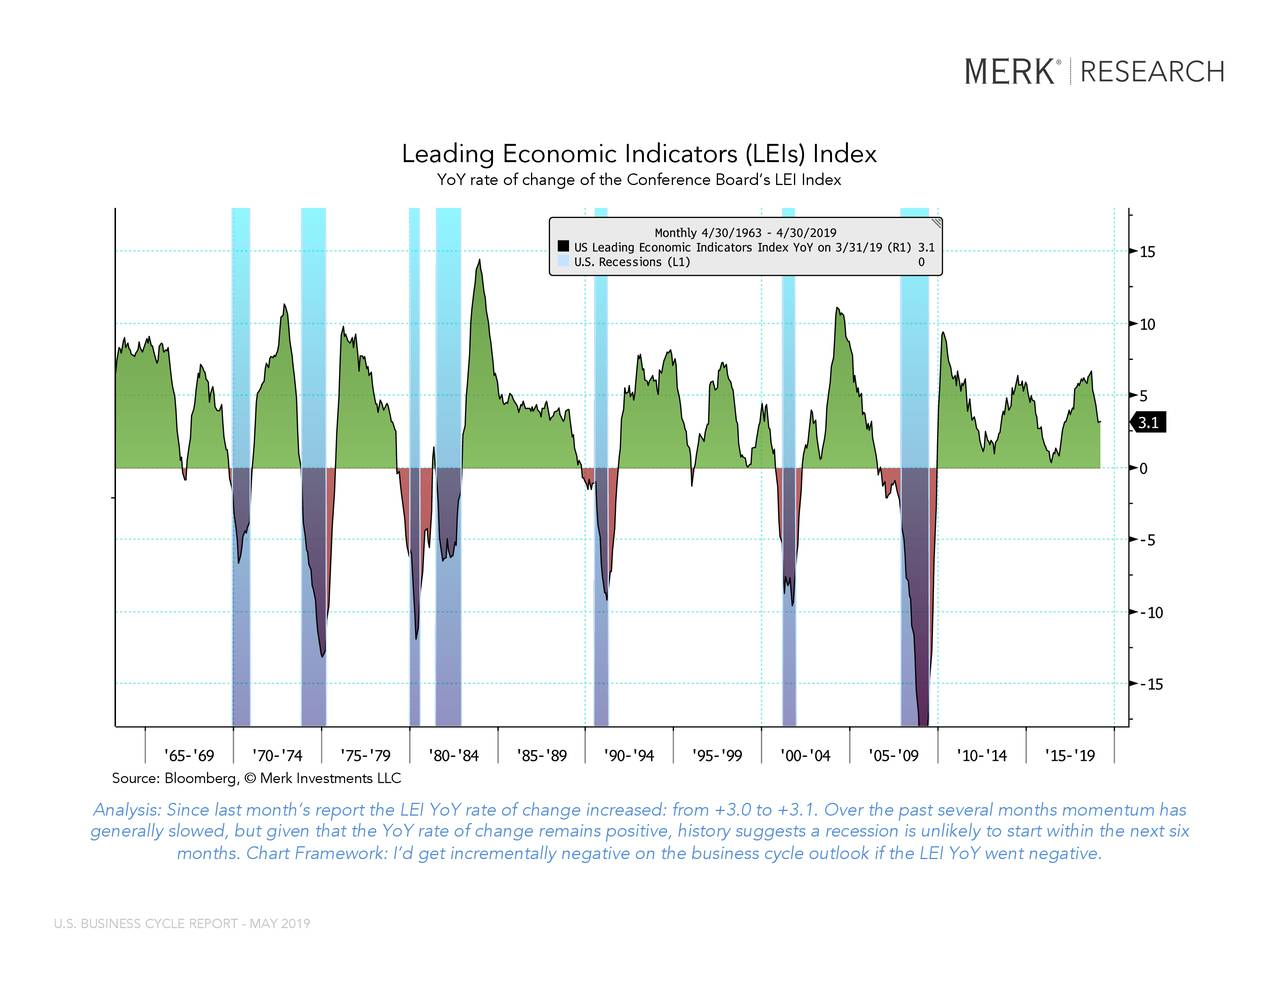 """LEI YOY Index (Conference Board US Leadi... USRINDEX Index (U.S. Recession Indicator... Leading Economic Indicators (LEIs) Index YoY rate of change of the Conference Board's LEI Index Source: Bloomberg,© Merk Investments LLC This report may not be modified or altered in any way. The BLOOMBERG PROFESSIONAL service and BLOOMBERG Data are owned and distributed locally by Bloomberg Finance LP (""""BFLP"""") and its subsidiaries in all jurisdictions other than Argentina, Bermuda, China, India, Japan and Korea (the (""""BFLP do not provide investment advice, and nothing herein shall constitute an offer of financial instruments by BFLP, BLP or their affiliates.upport and service for the Services and distributes the Services either directly or through a non-BFLP subsidiary in the BLP Countries. BFLP, BLP and their affiliates Analysis: Since last month's report the LEI YoY rate of change increased: from +3.0 to +3.1. Over the past several months momentum has generally slowed, but given that the YoY rate of change remains positive, history suggests a recession is unlikely to start w ithin the next six Bloomberg ® 05/03/2019 16:07:16 1 months. Chart Framework: I'd get incrementally negative on the business cycle outlook if the LEI YoY went negative. U.S. BUSINESS CYCLE REPORT - MAY 2019"""